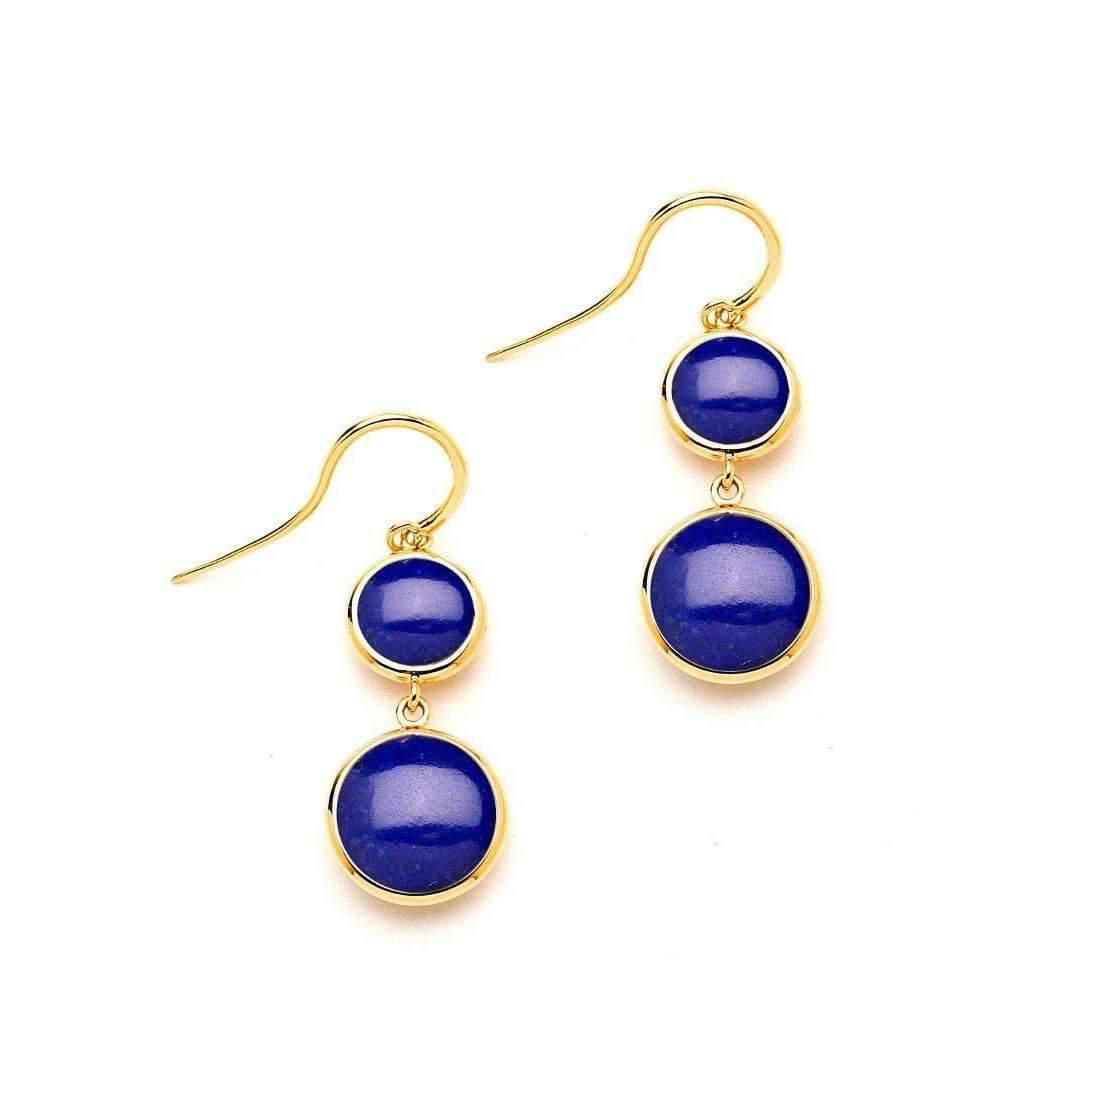 Syna 18kt Lapis Lazuli Earrings M7SDGNM